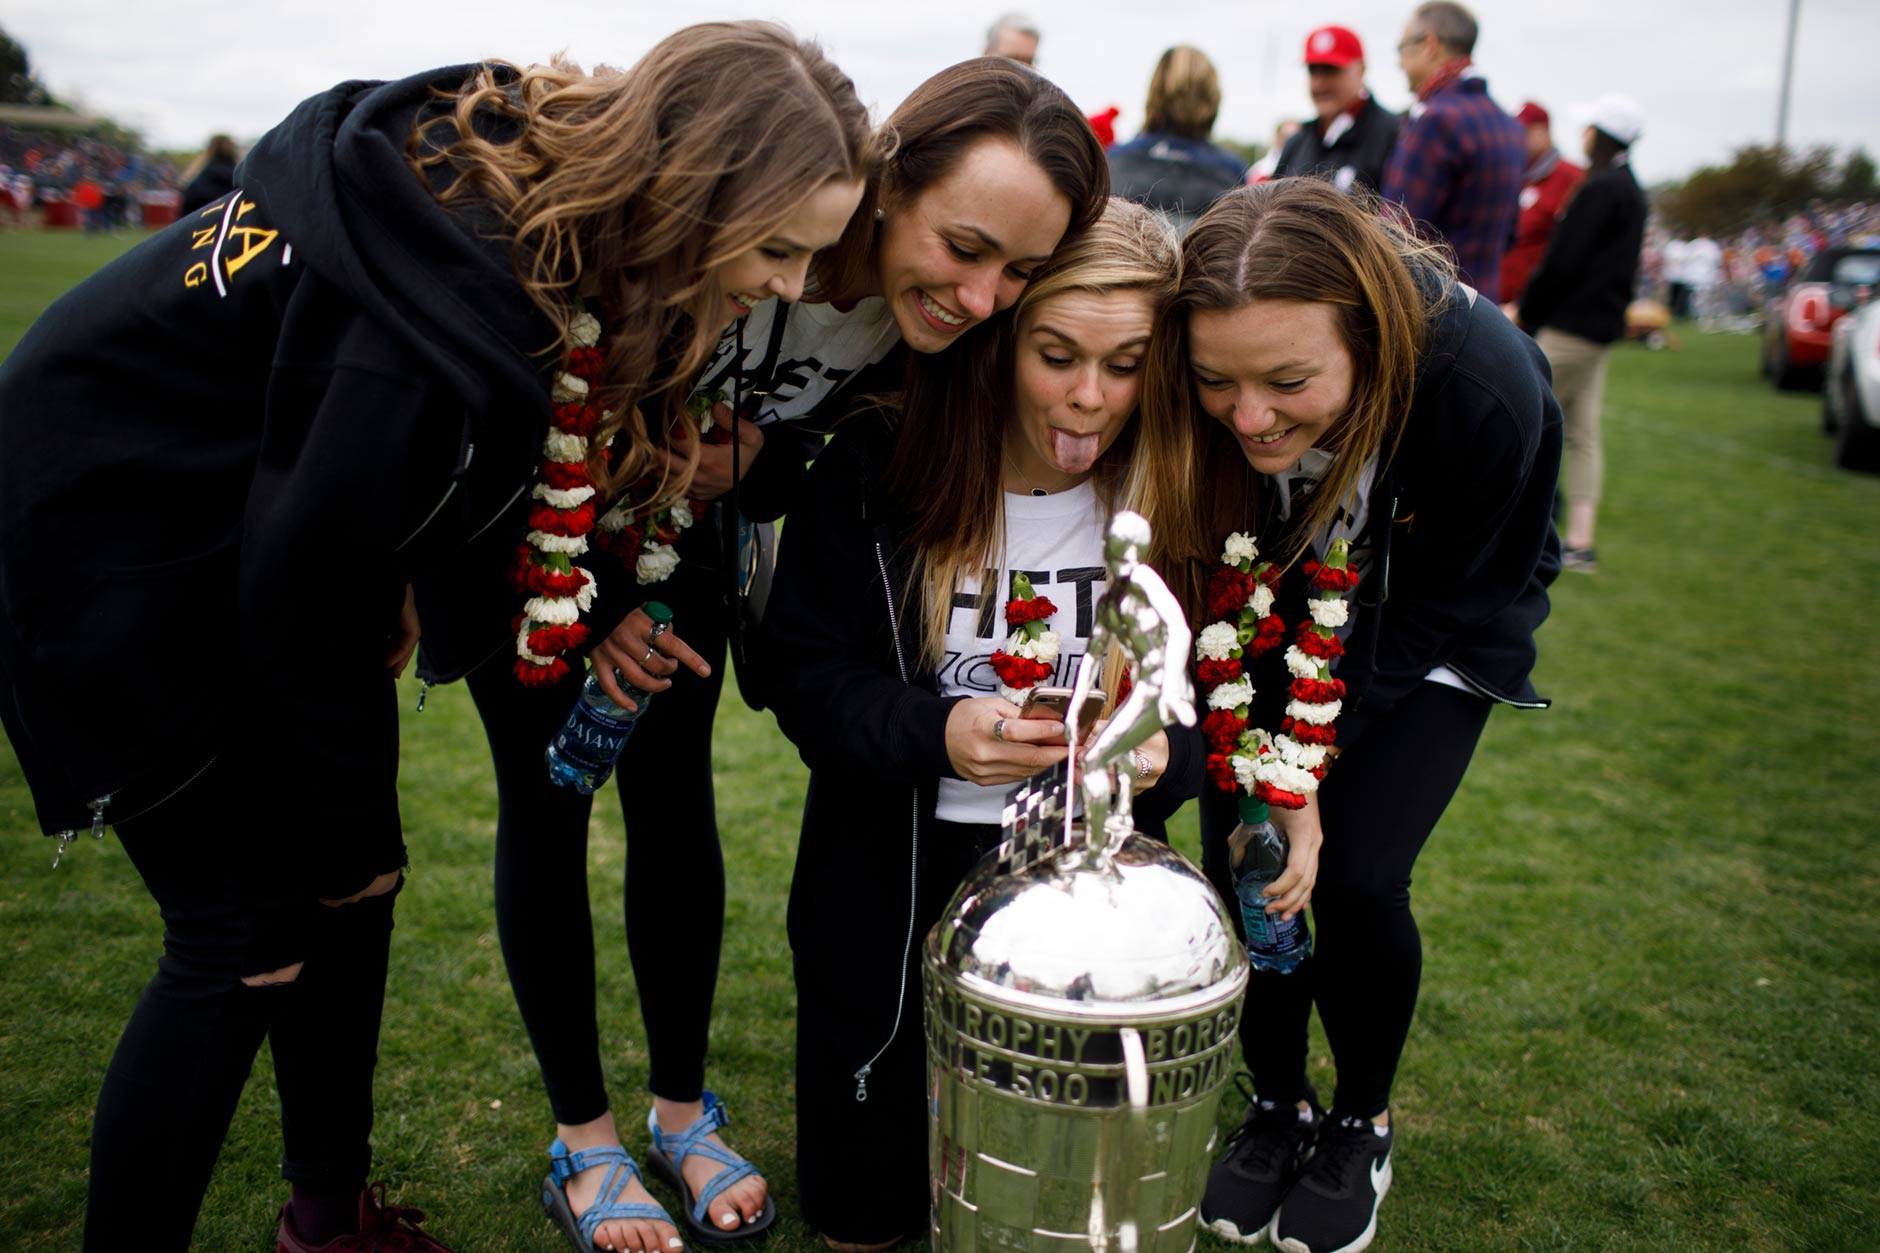 Kappa Alpha Theta riders Rachel Brown, left, Evelyn Malcomb, Sydney Keaton and Grace Bennett take a selfie with the Borg-Warner Trophy before the Men's Little 500 at Bill Armstrong Stadium on Saturday, April 22, 2017. Kappa Alpha Theta won the Women's Little 500 on Friday afternoon. (James Brosher/IU Communications)